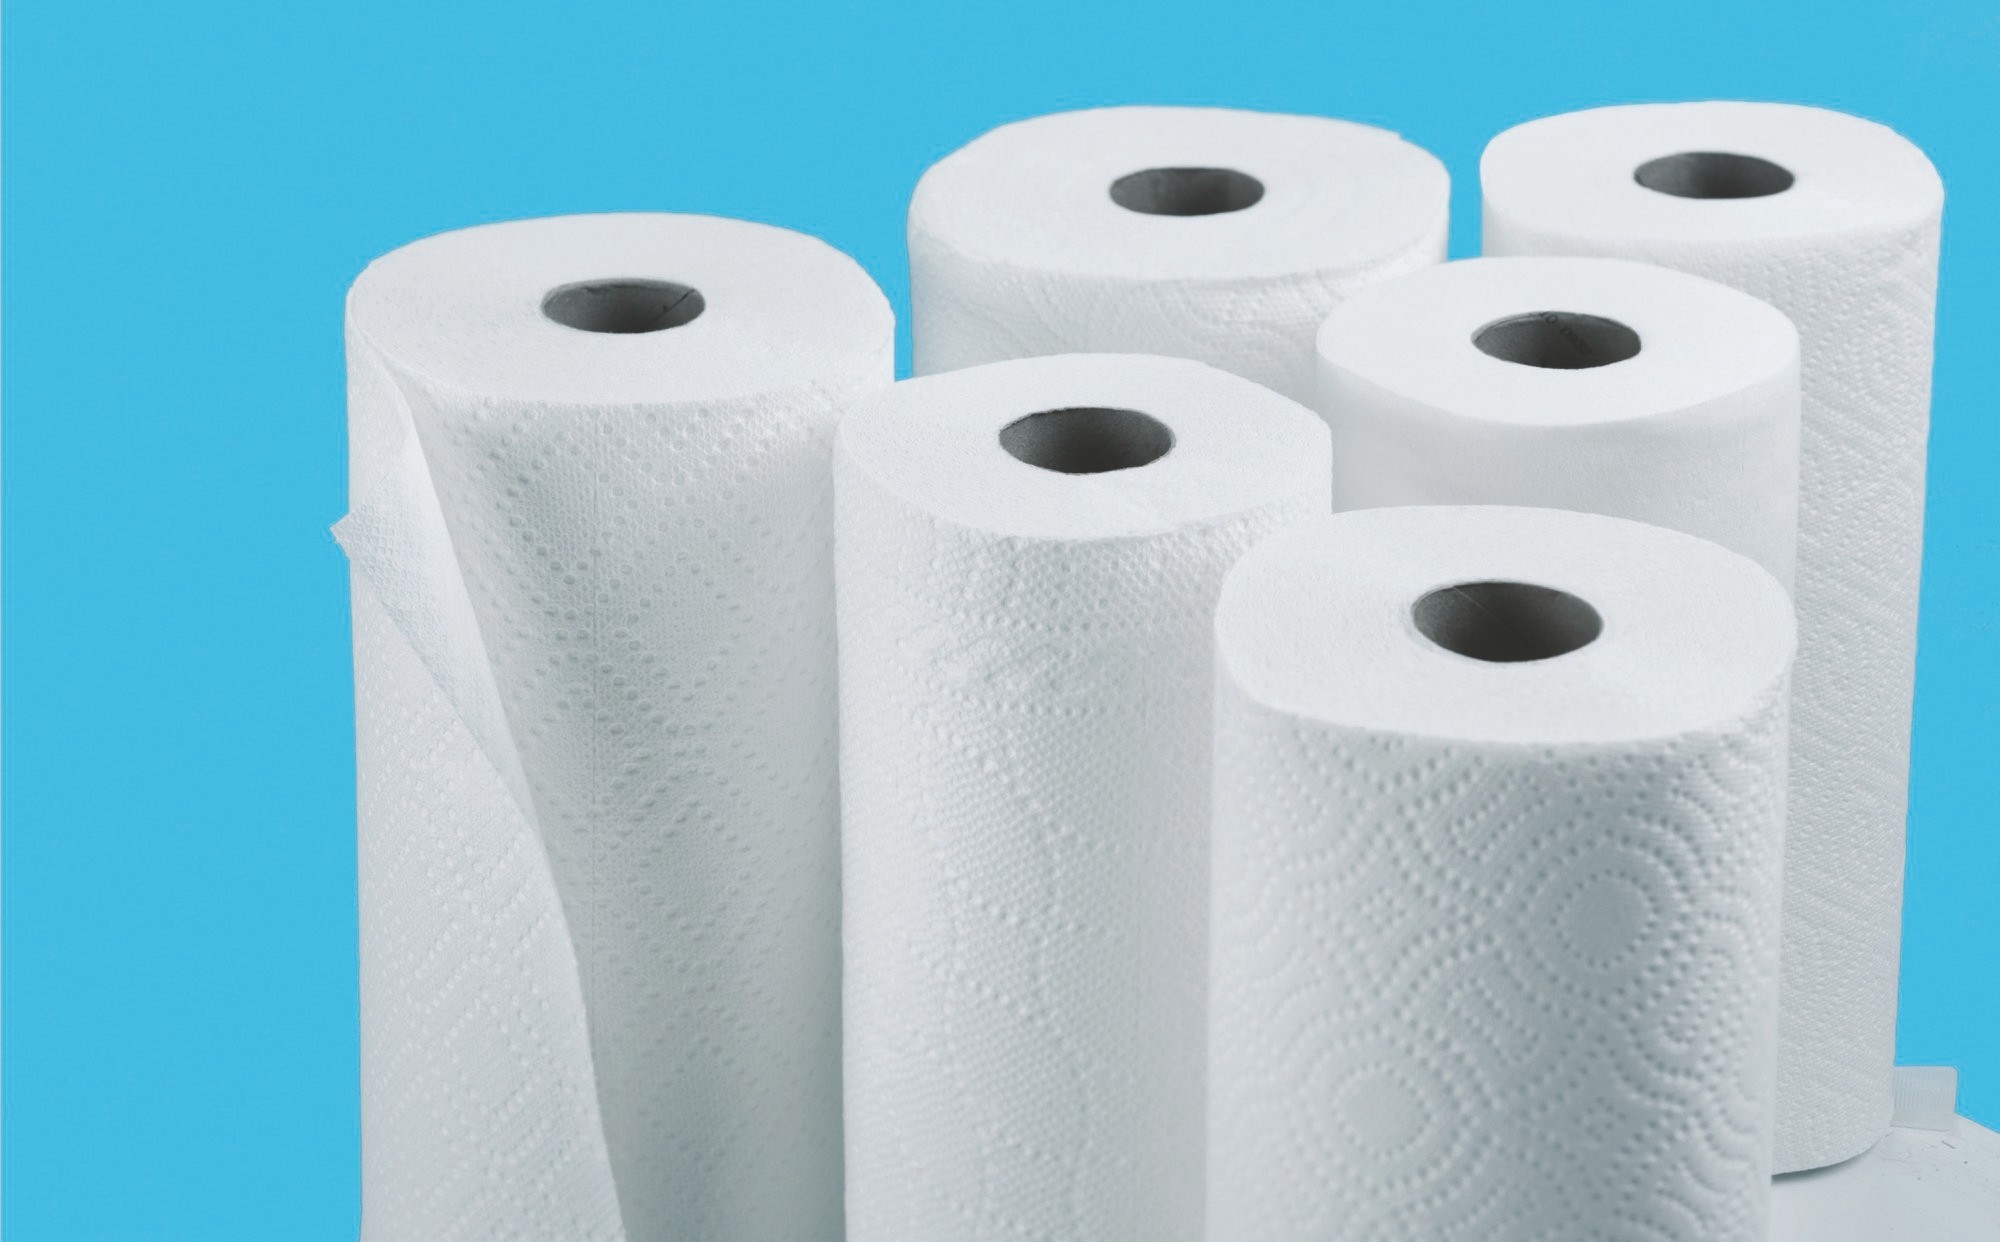 For kitchen cleanup, a fresh paper towel is a better choice than a germy sponge.